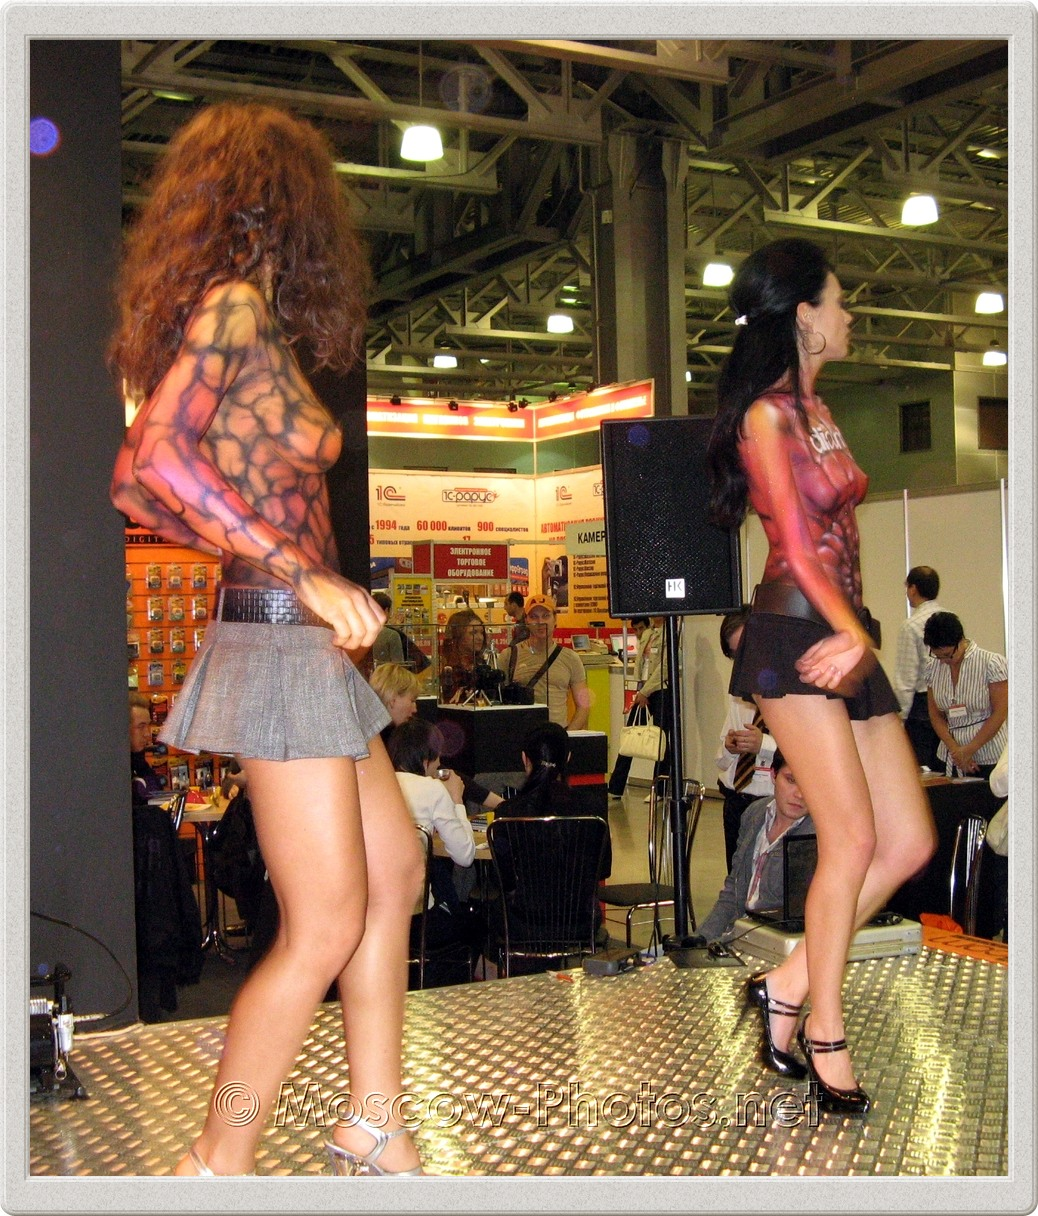 Body painted dancing girls in mini skirts.